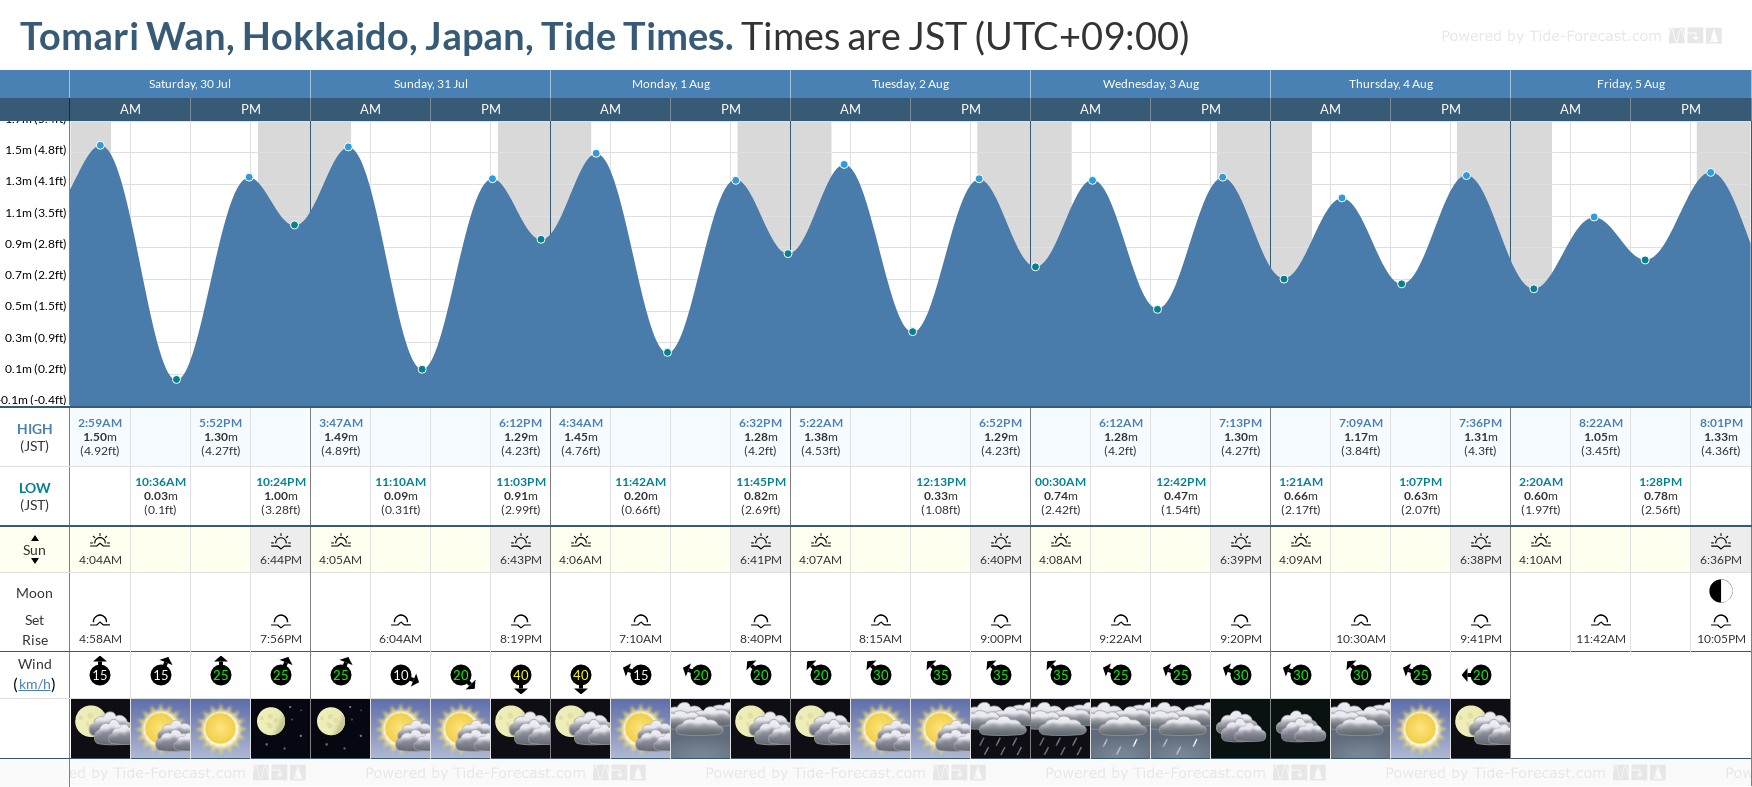 Tomari Wan, Hokkaido, Japan Tide Chart including high and low tide tide times for the next 7 days